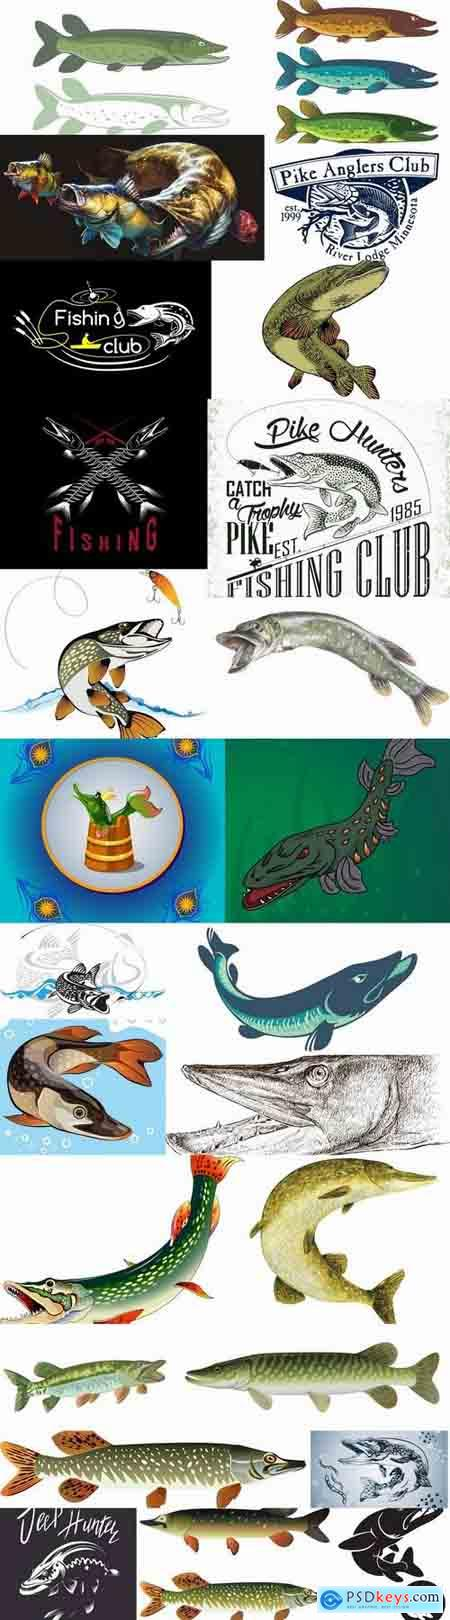 Trophy pike fishing mining vector image 25 EPS